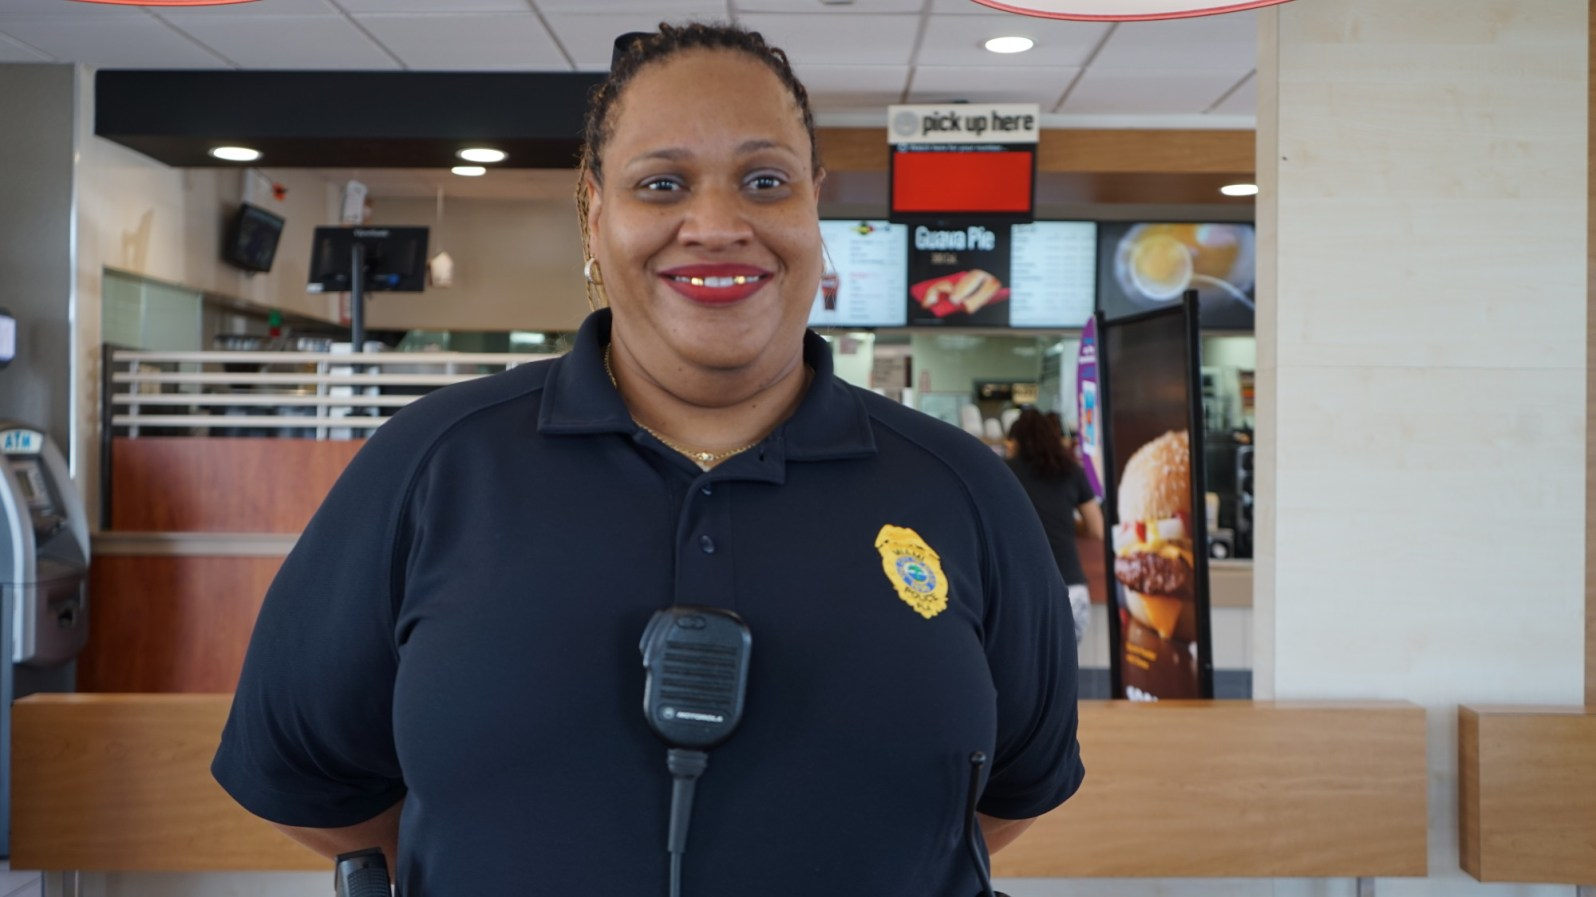 Kia Burrows, Lieutenant, City of Miami Police Department